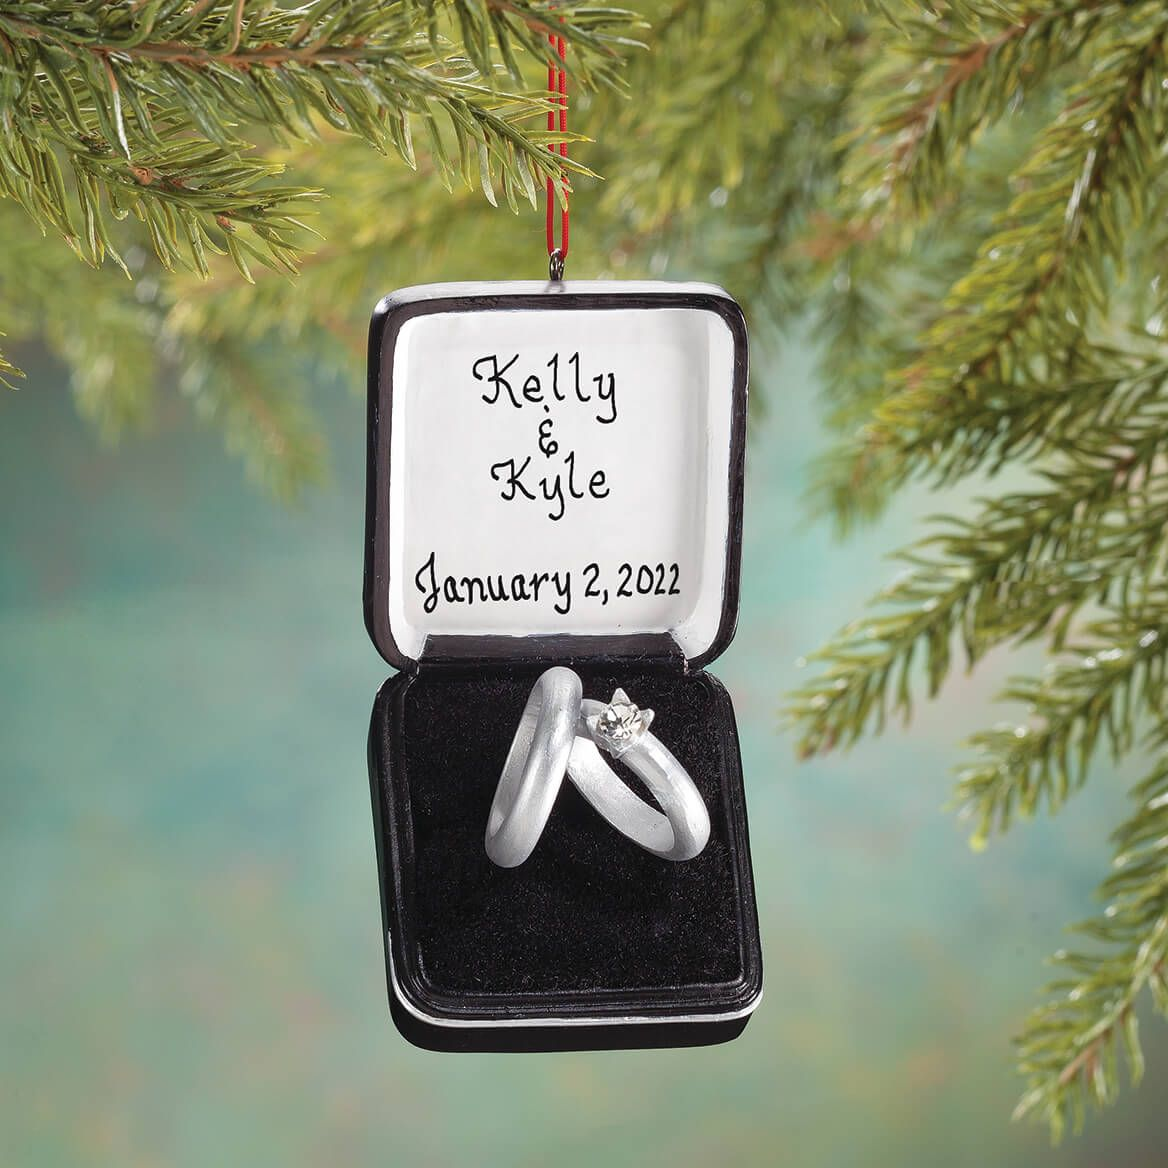 Personalized Wedding Ring Box Ornament-355816